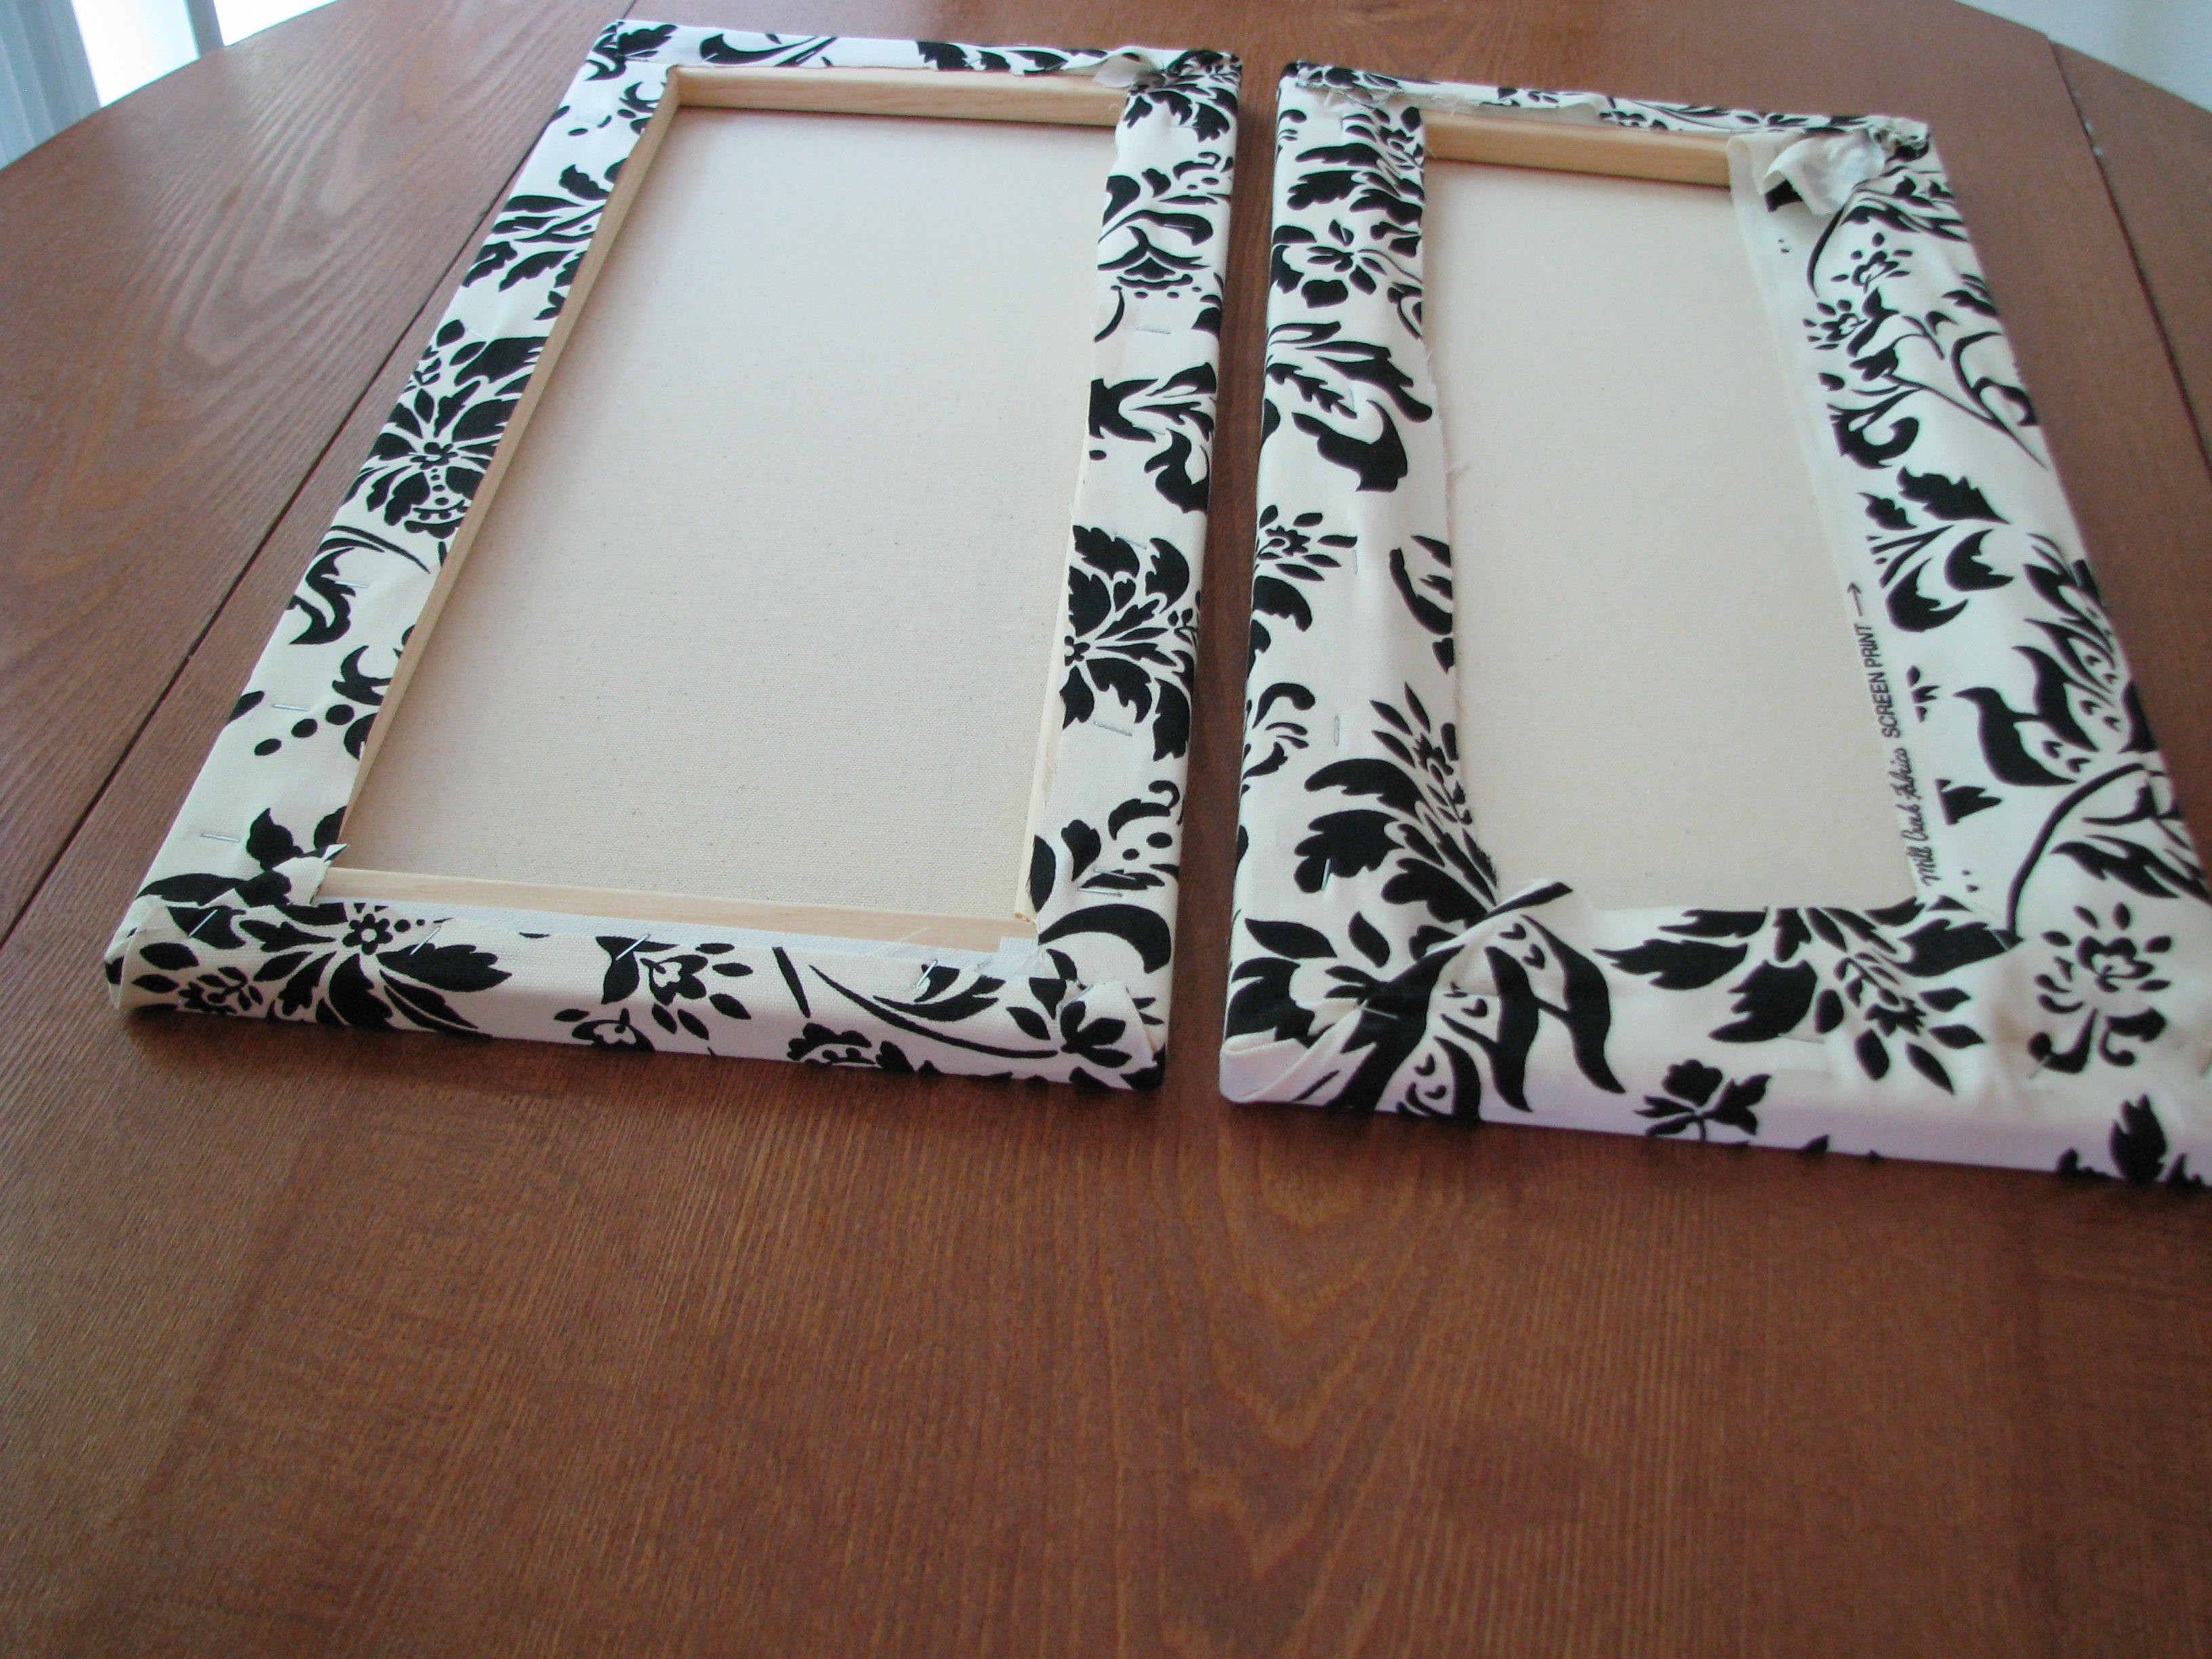 Best ideas about Fabric Wall Art . Save or Pin Make Your Own Canvas Wall Hangings Now.